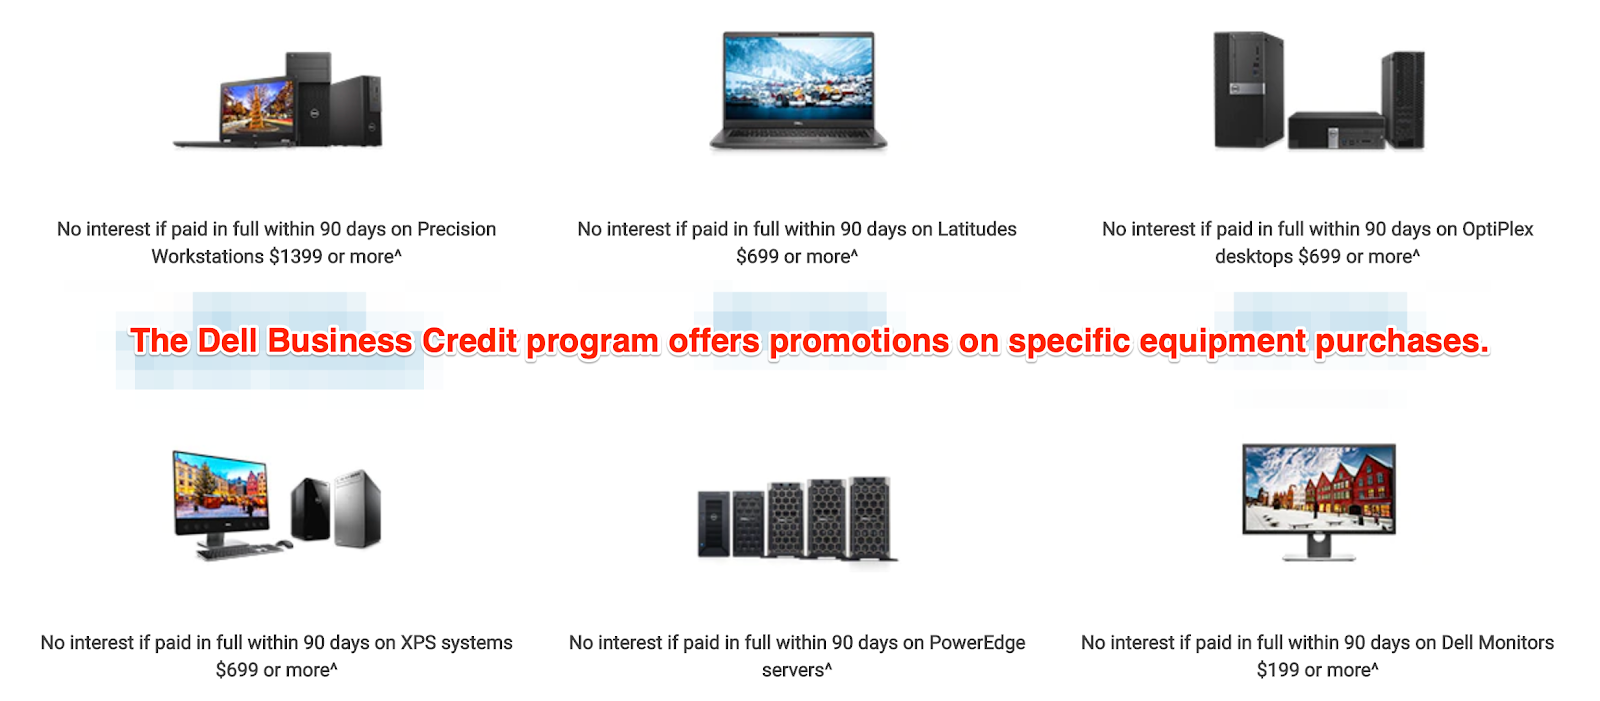 Dell Business Credit Offers Promotional Pricing on Specific Equipment